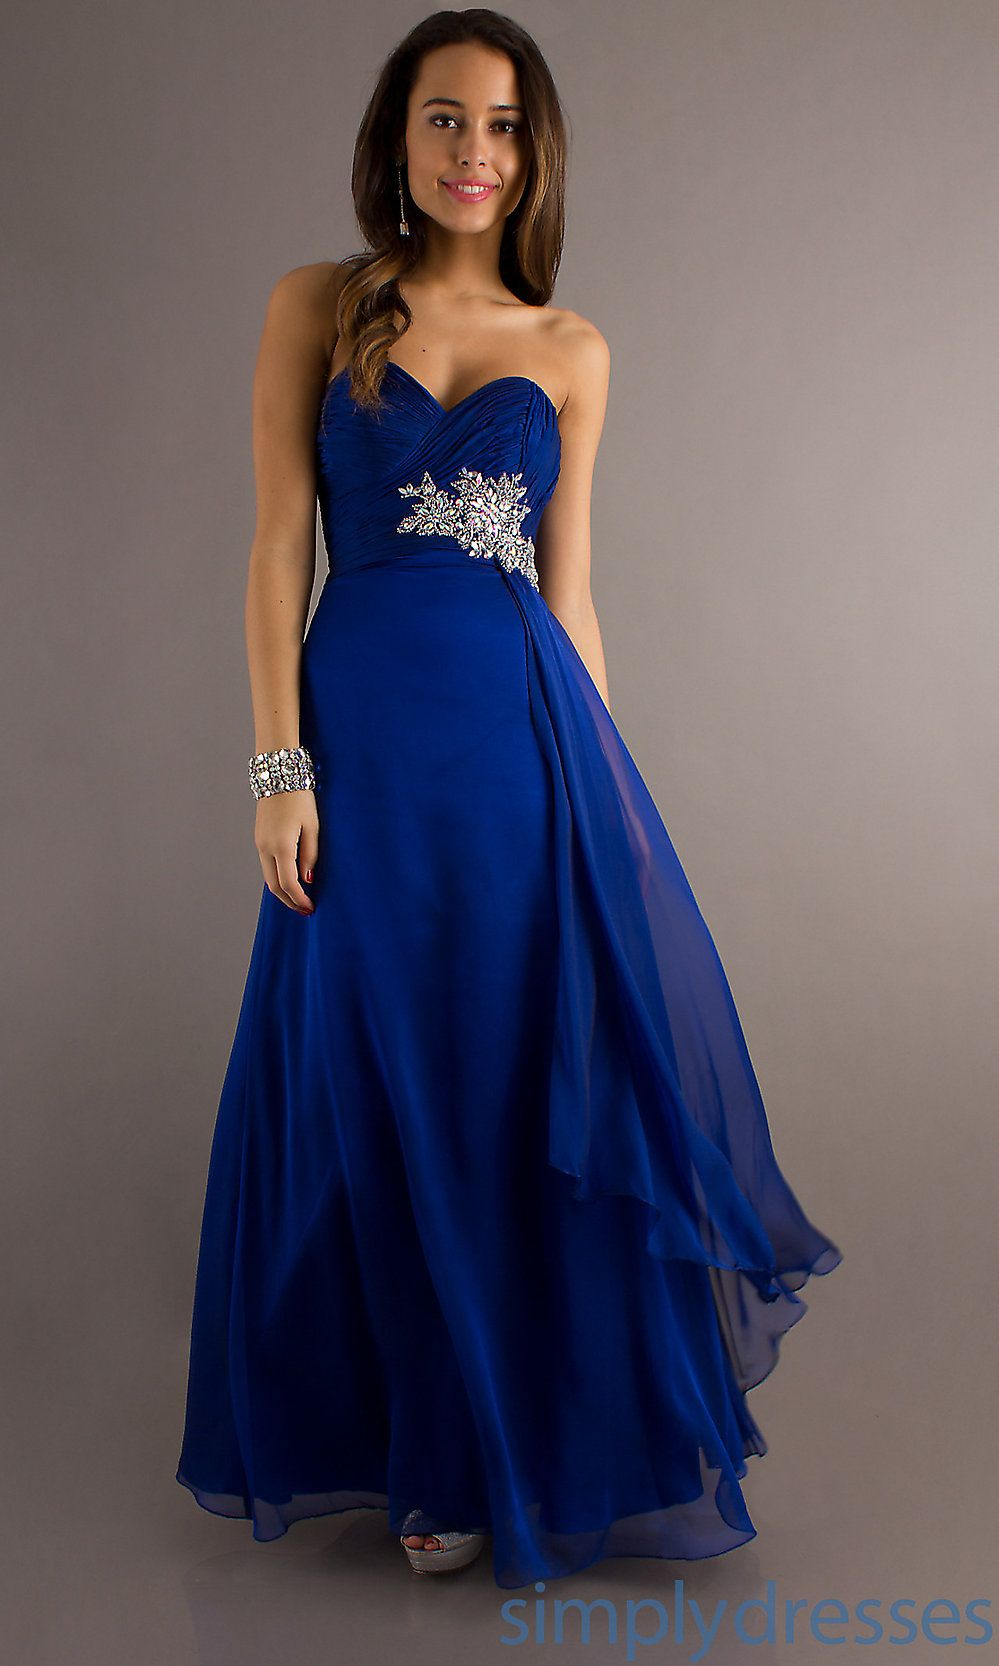 Dresses formal prom dresses evening wear temptation for Blue long dress wedding